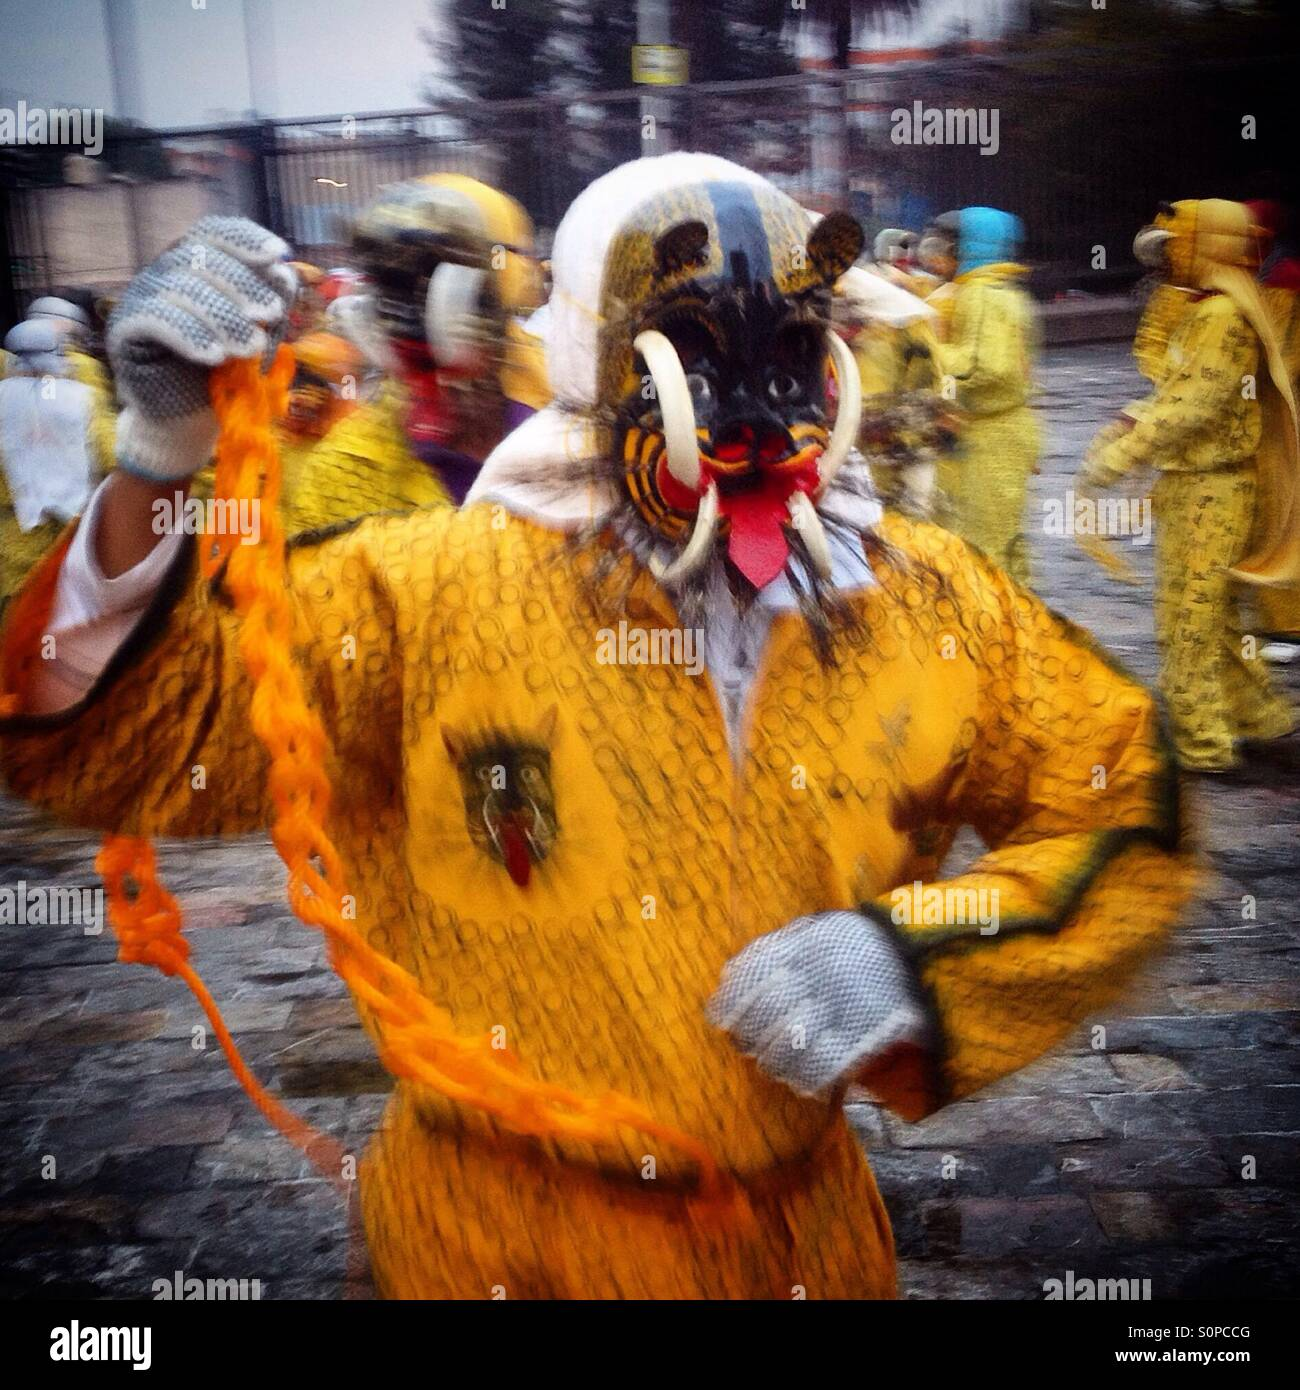 A dancer from Olinala, Guerrero, performs dressed as a jaguar during the pilgrimage of Our Lady of Guadalupe in - Stock Image